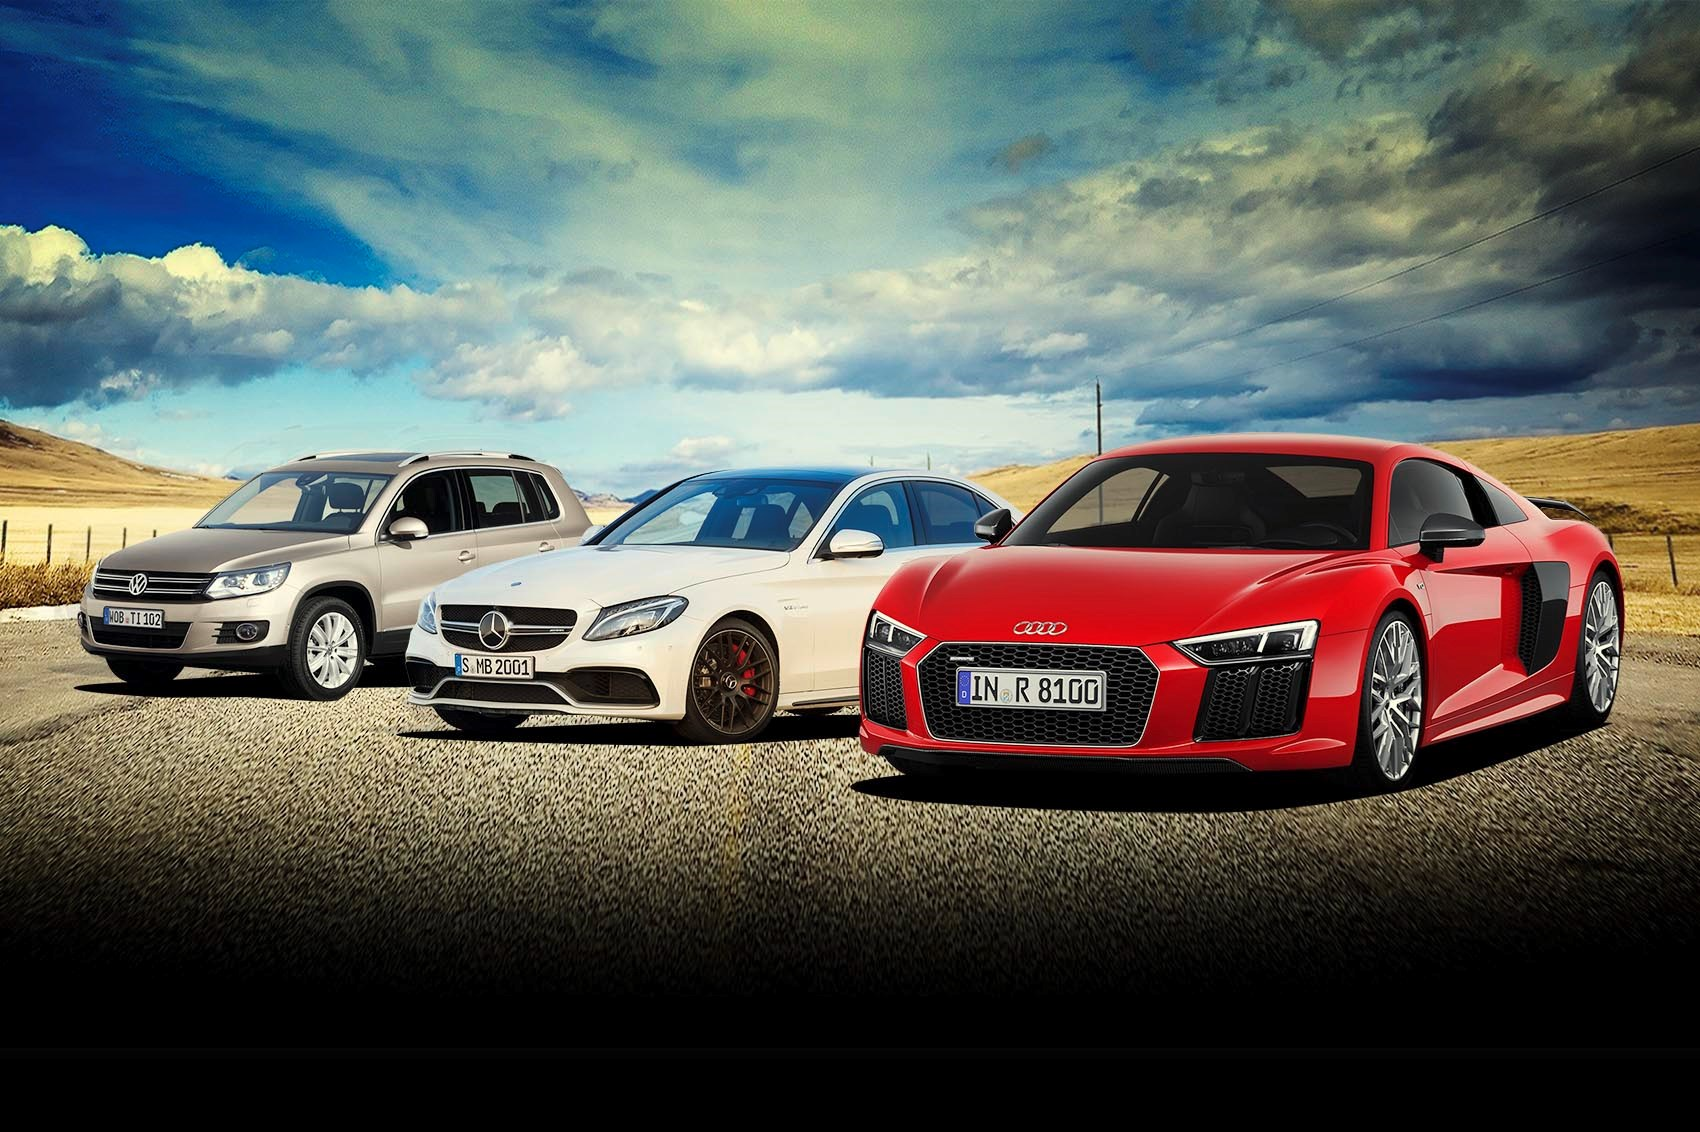 Win an Audi R8 Mercedes AMG C63 and a VW Tiguan with CAR magazine